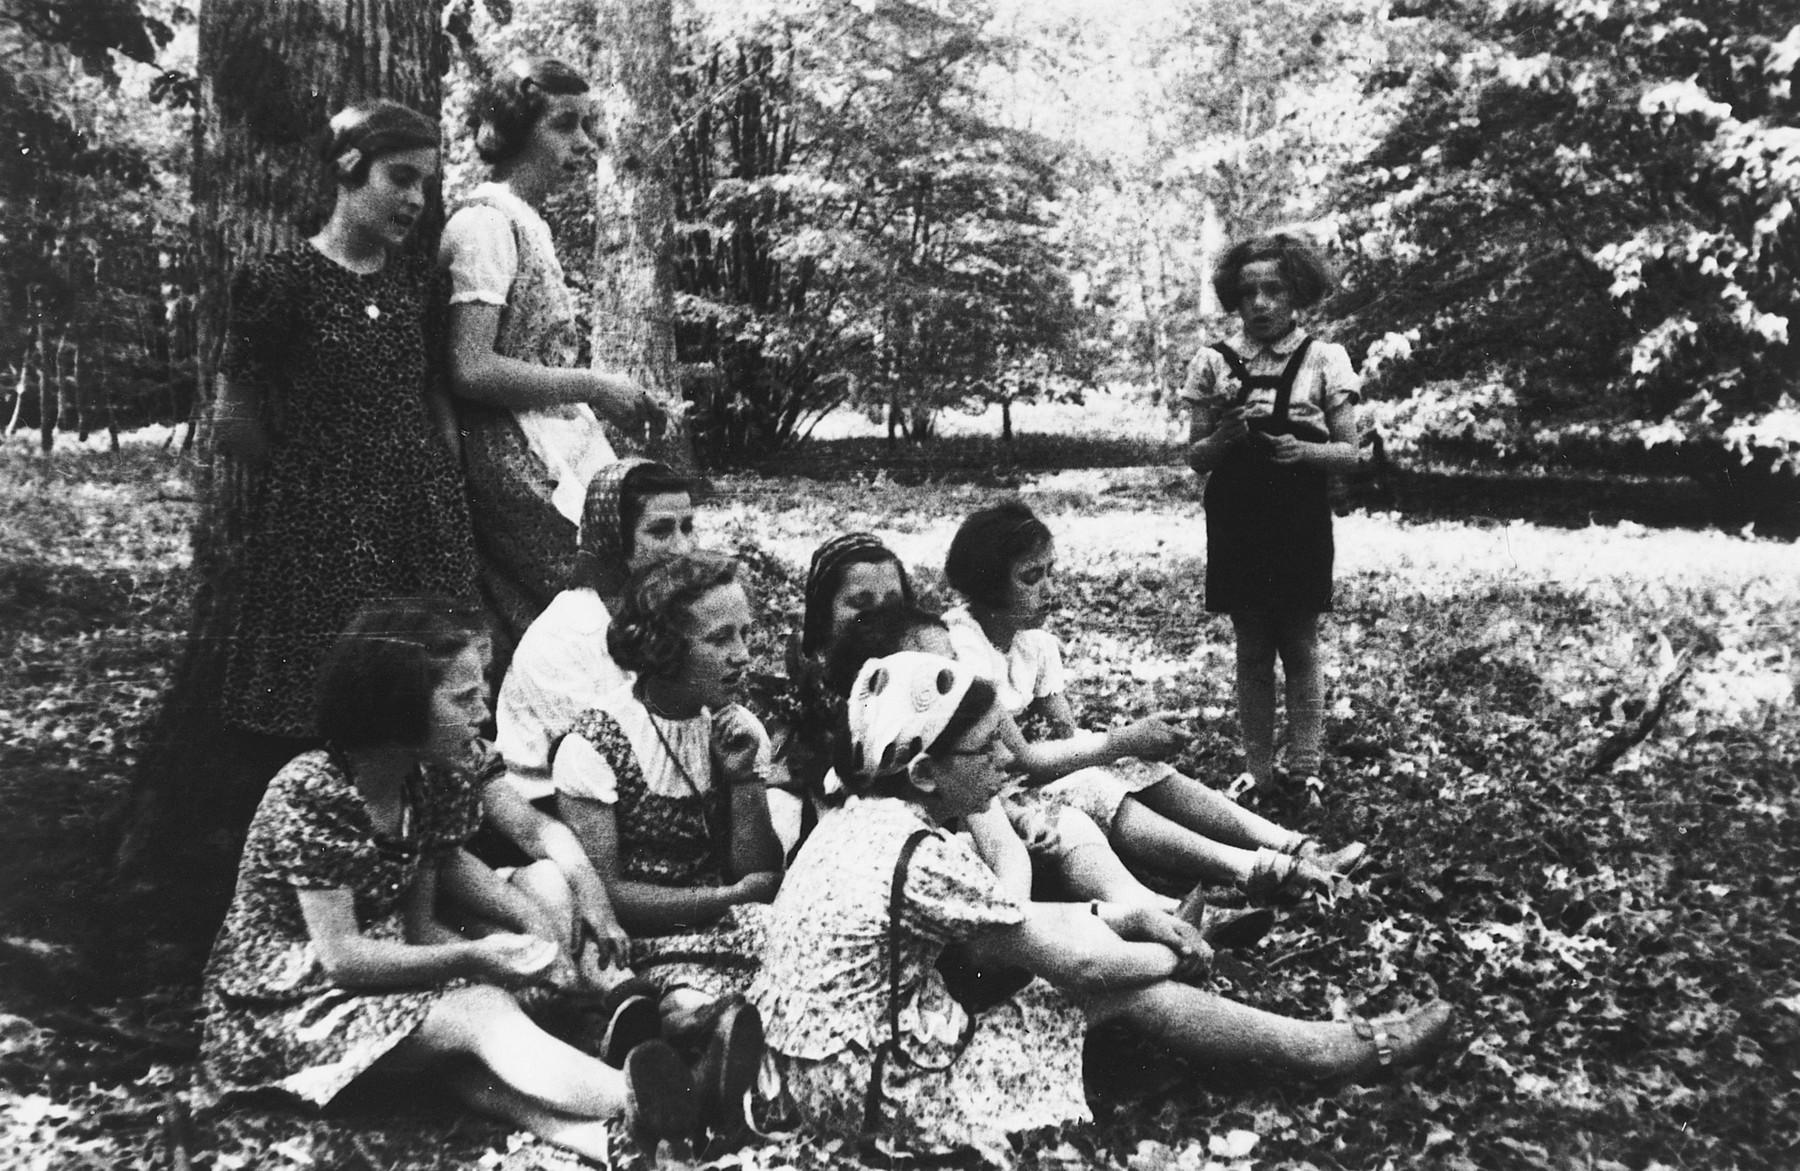 Young Jewish girls from Germany and Austria relax on the grounds of La Guette children's home the summer before the start of World War II.  Among those pictured are Ruth Strauss and Daisy Herman leaning against the tree, and Alice Menkes facing the other girls.  The young girl sitting on the ground at the far left is Hilde Mann (later Hilde Michele Simenauer).